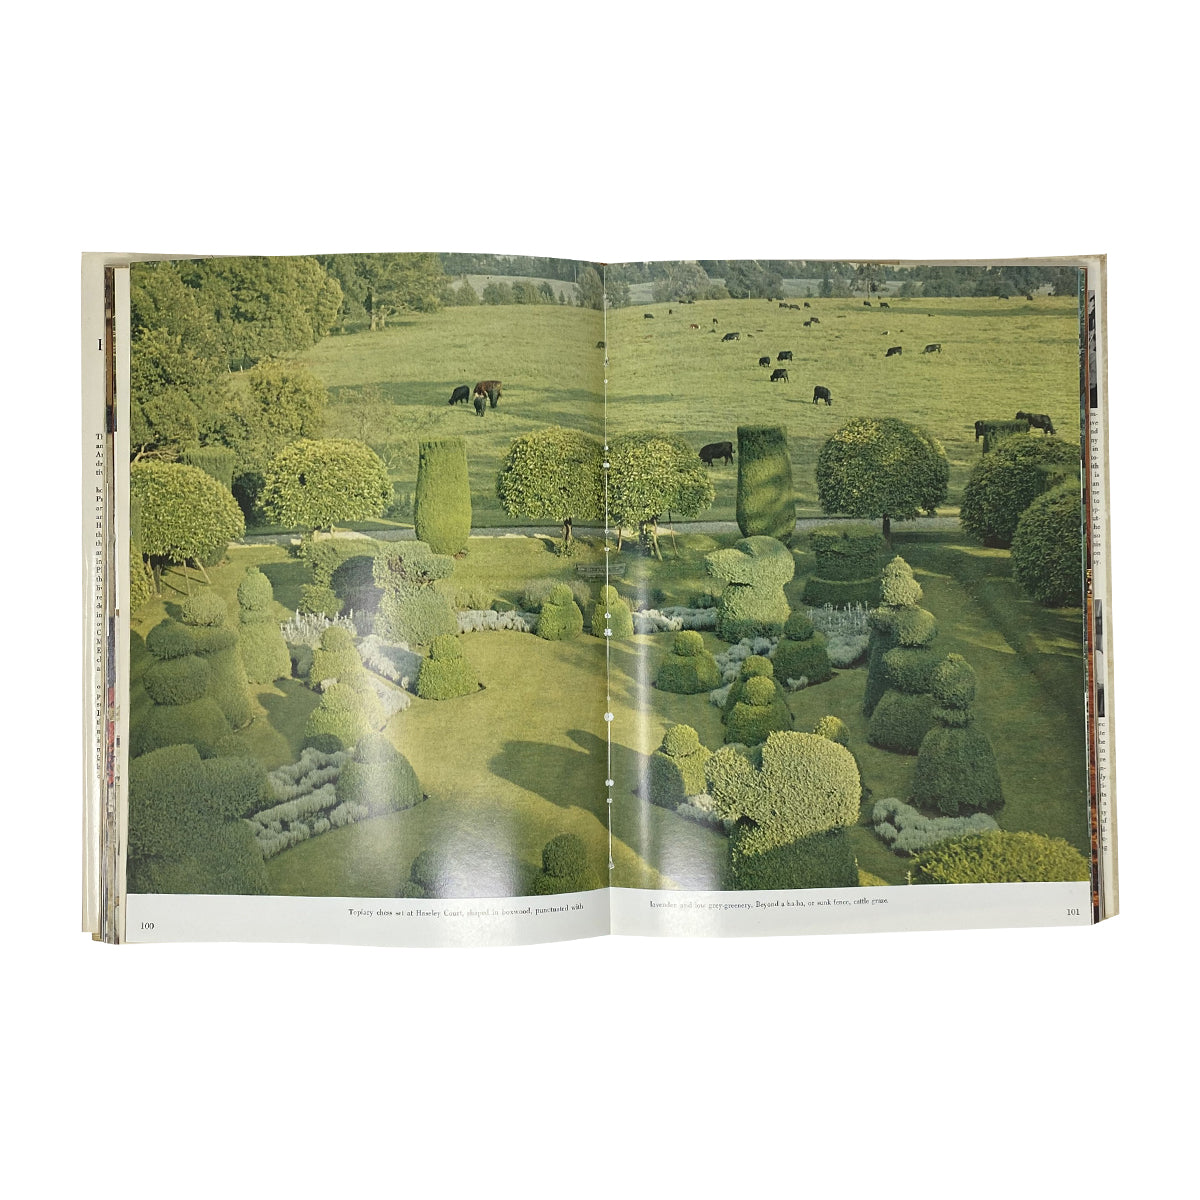 Vogue's Book of Houses, Gardens, People - Flamingo Estate